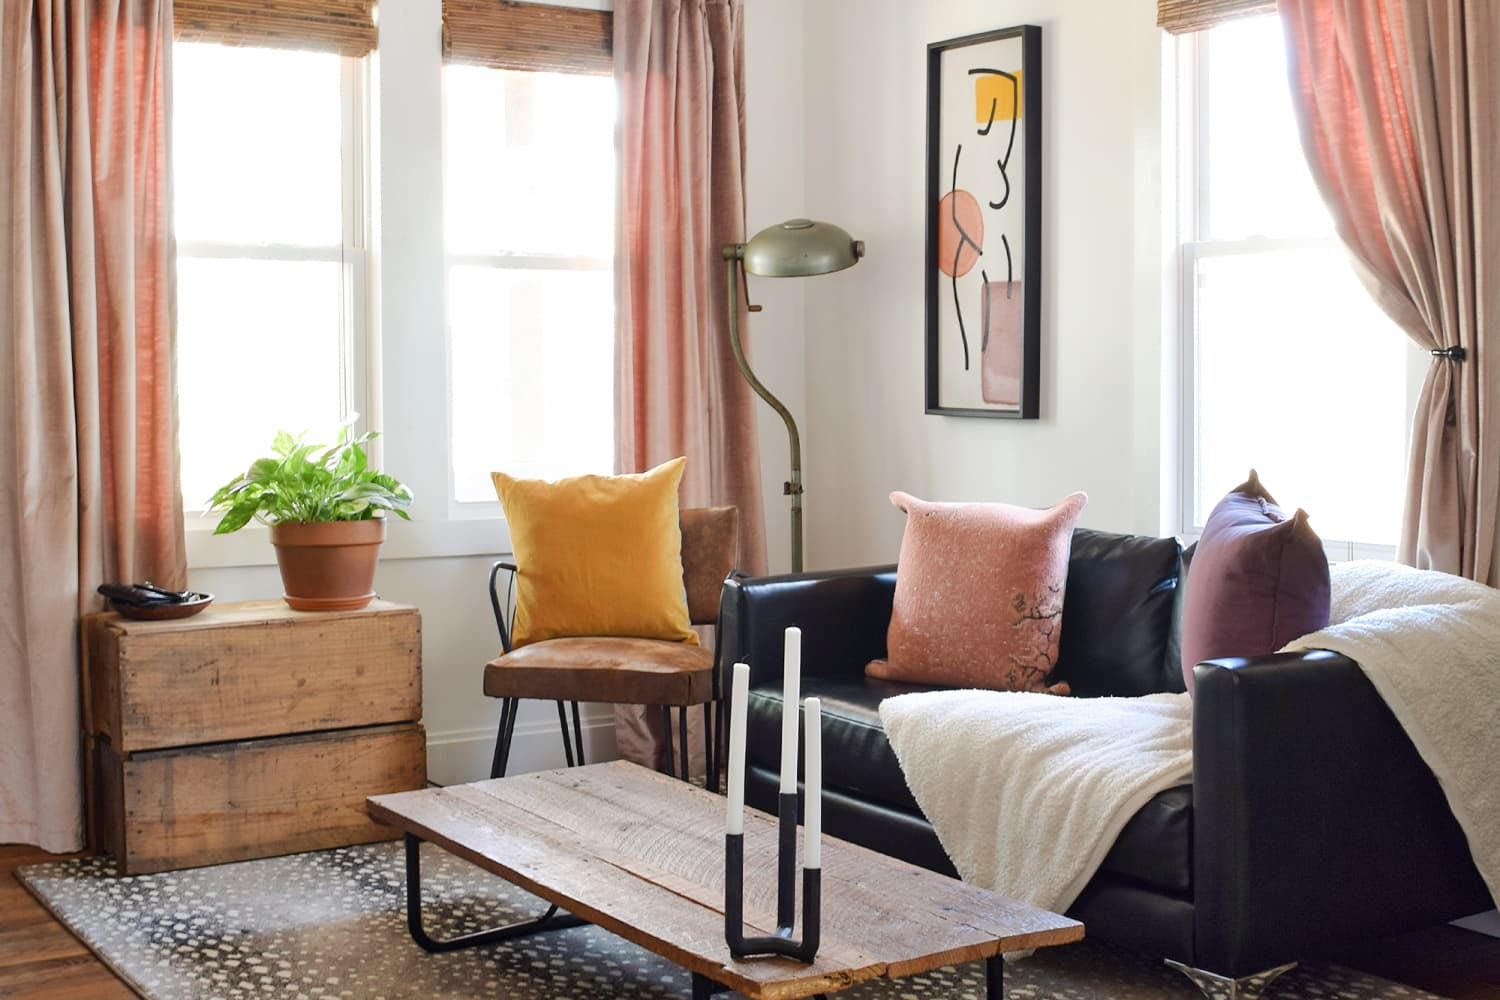 A Minimalism Coach Shows How to DIY Big Style in a Small Space (on an Even Smaller Budget)